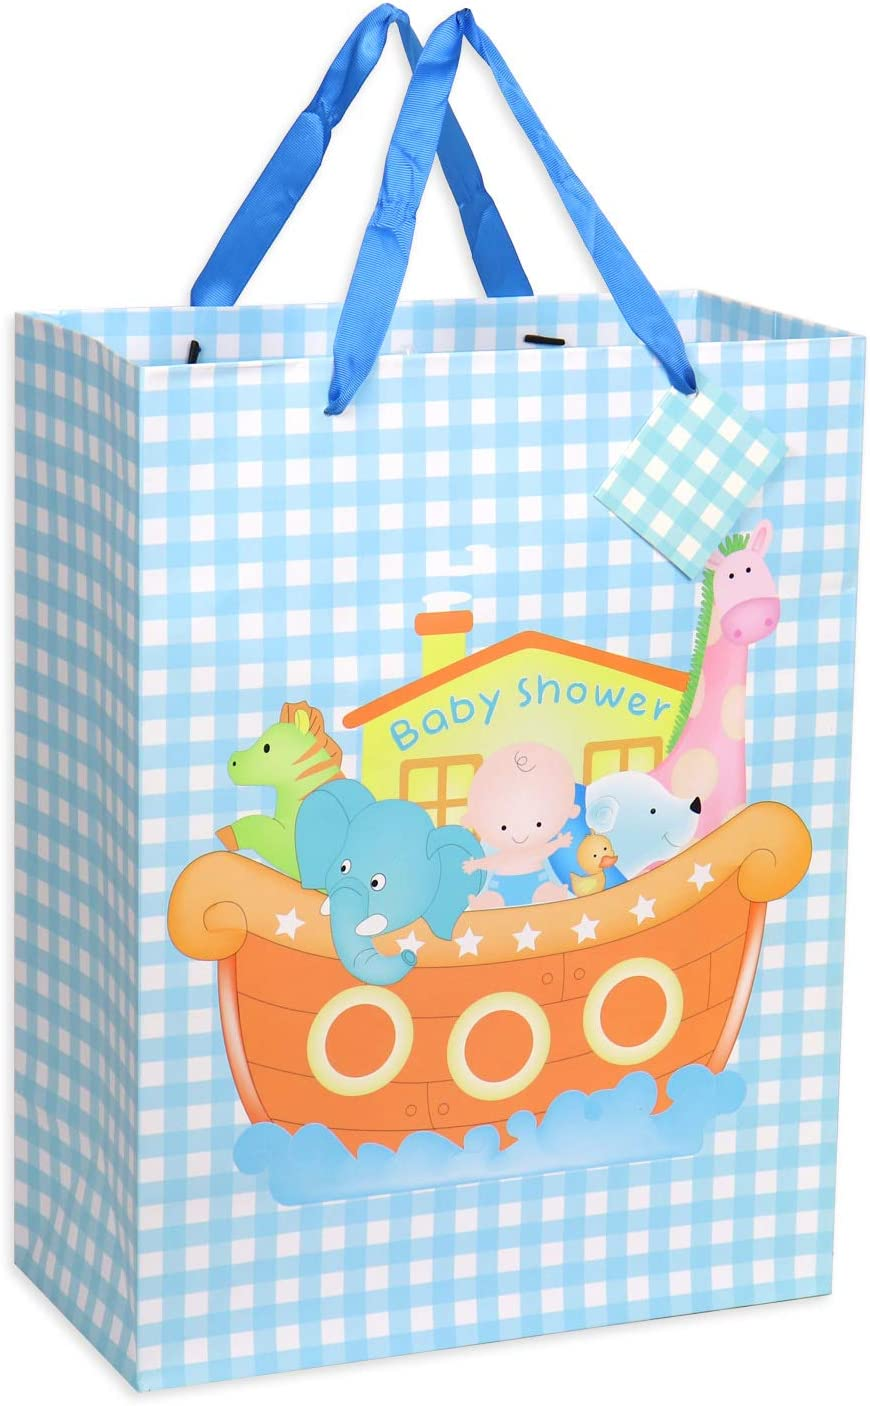 Parties Birthday and Baby Boy Medium and Small Gift Bags Assortment for Baby Shower 12 Pcs Baby Gift Bags Baby Girl Large Assorted Sizes